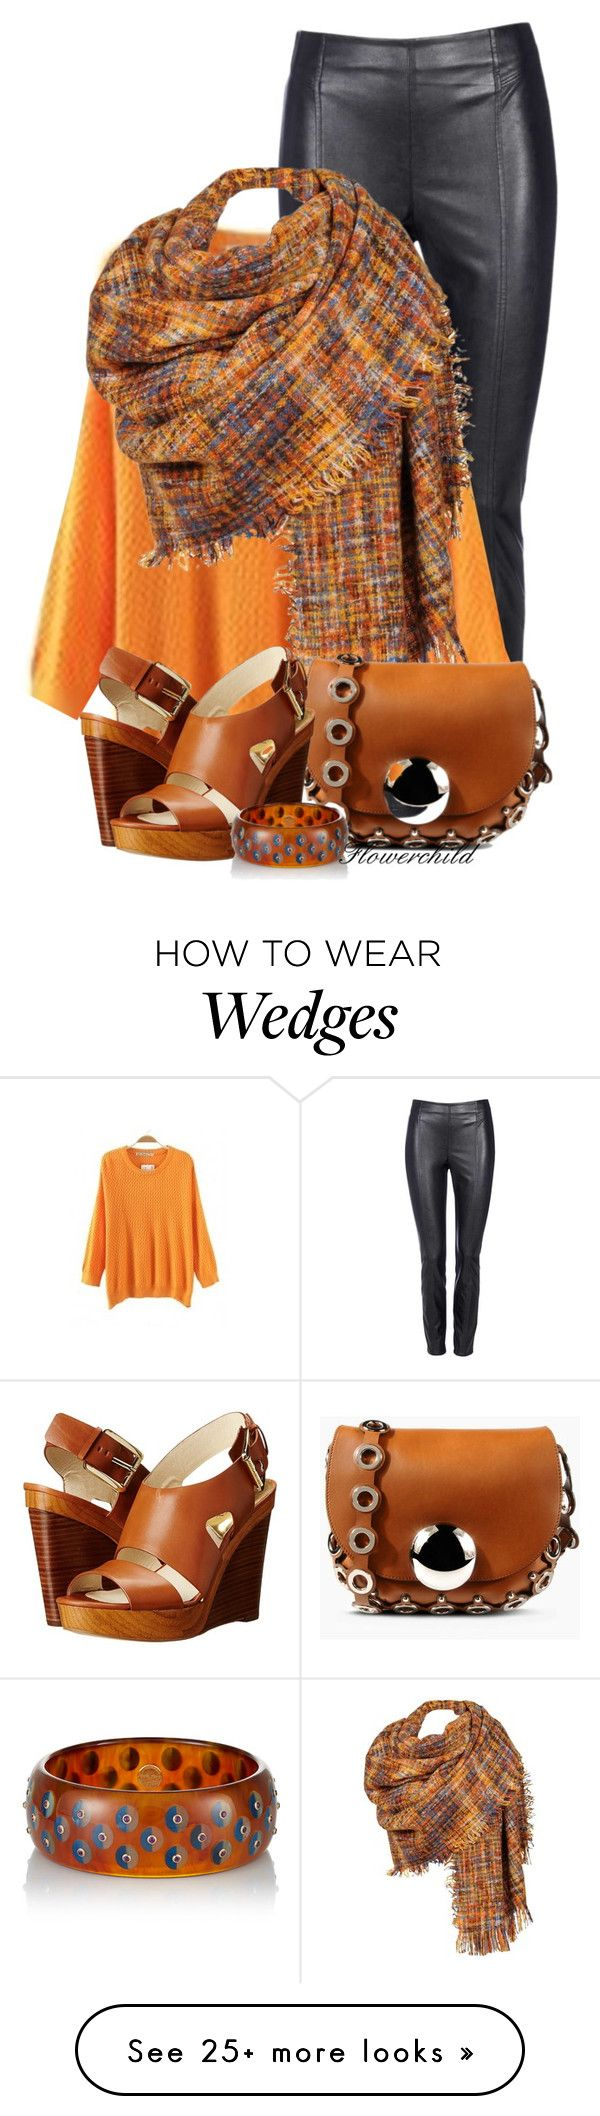 """Sweater & Leather Leggings"" by flowerchild805 on Polyvore featuring moda, Wallis, Black Rivet, Emilio Pucci, MICHAEL Michael Kors e Mark Davis"